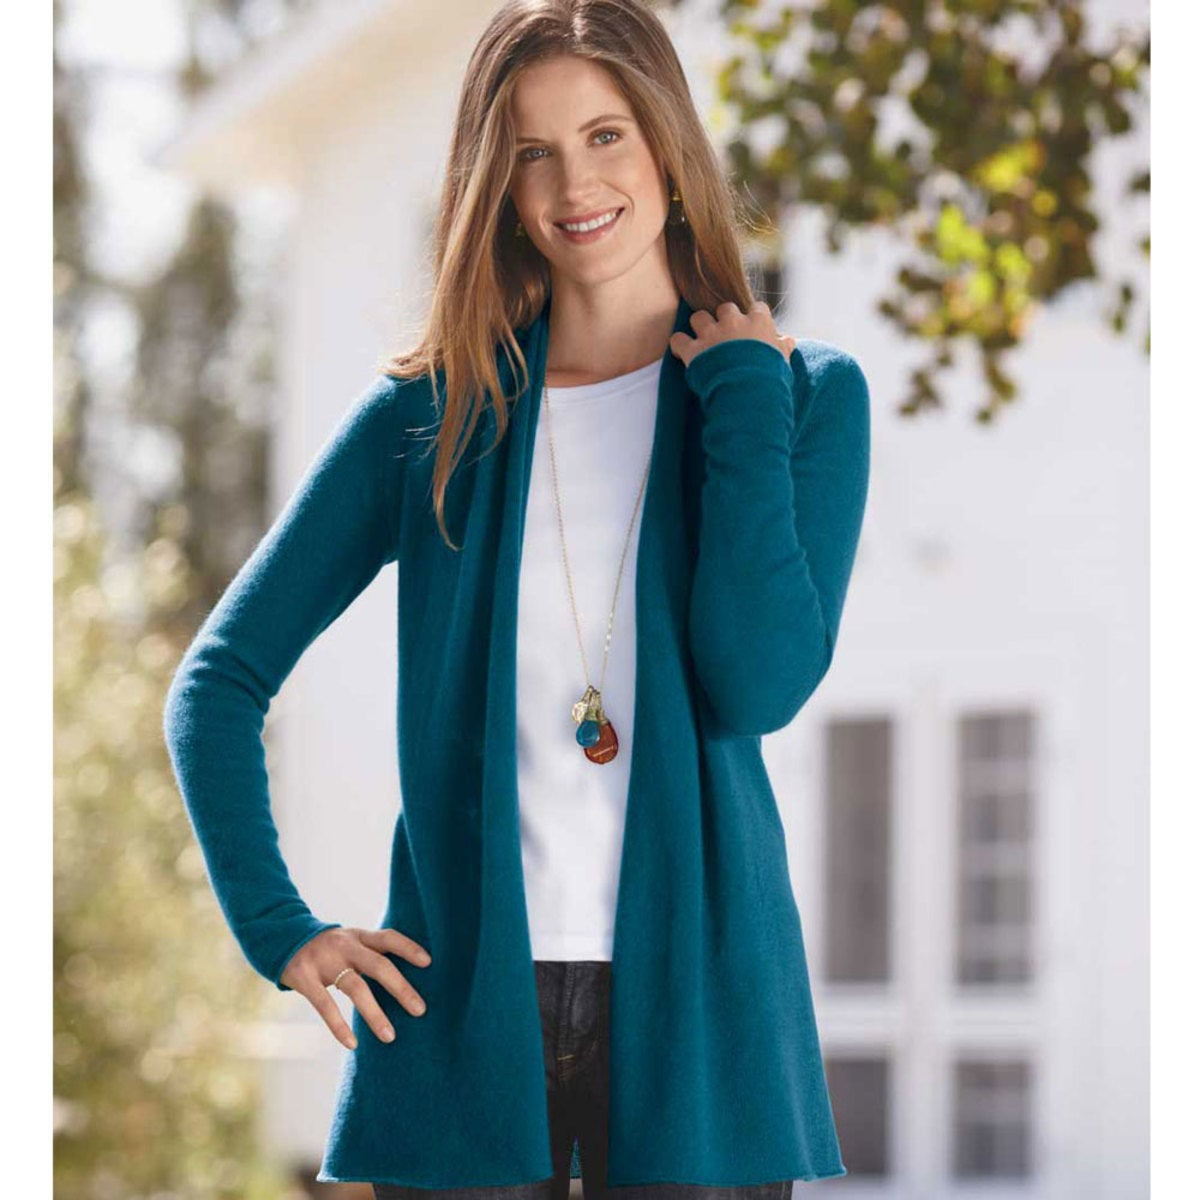 Lightweight Cashmere Duster Cardigan - Blue - L (12-14)